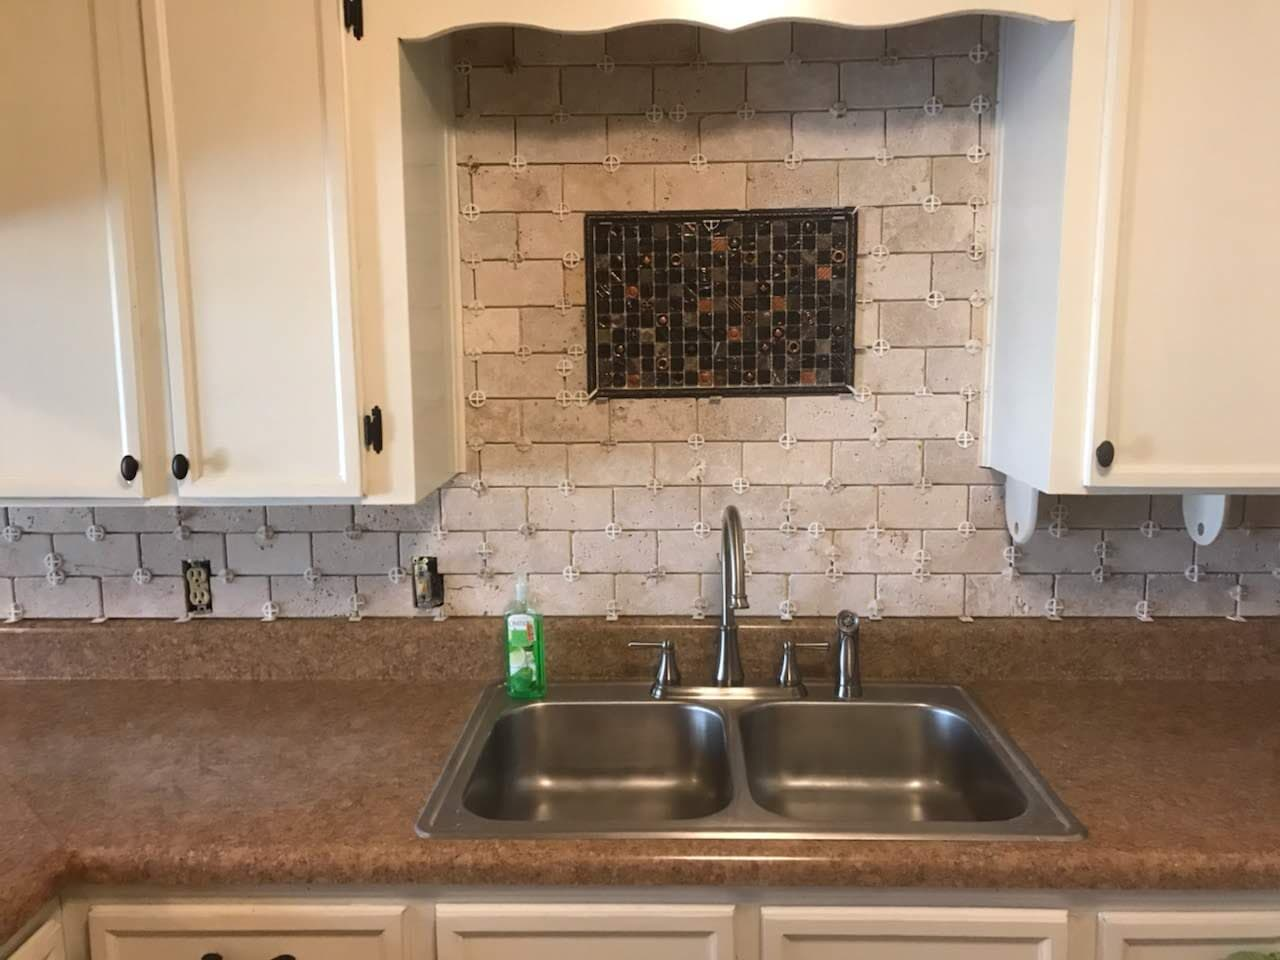 Professional backsplash installation in Wilkesboro, NC from McLean Floorcoverings